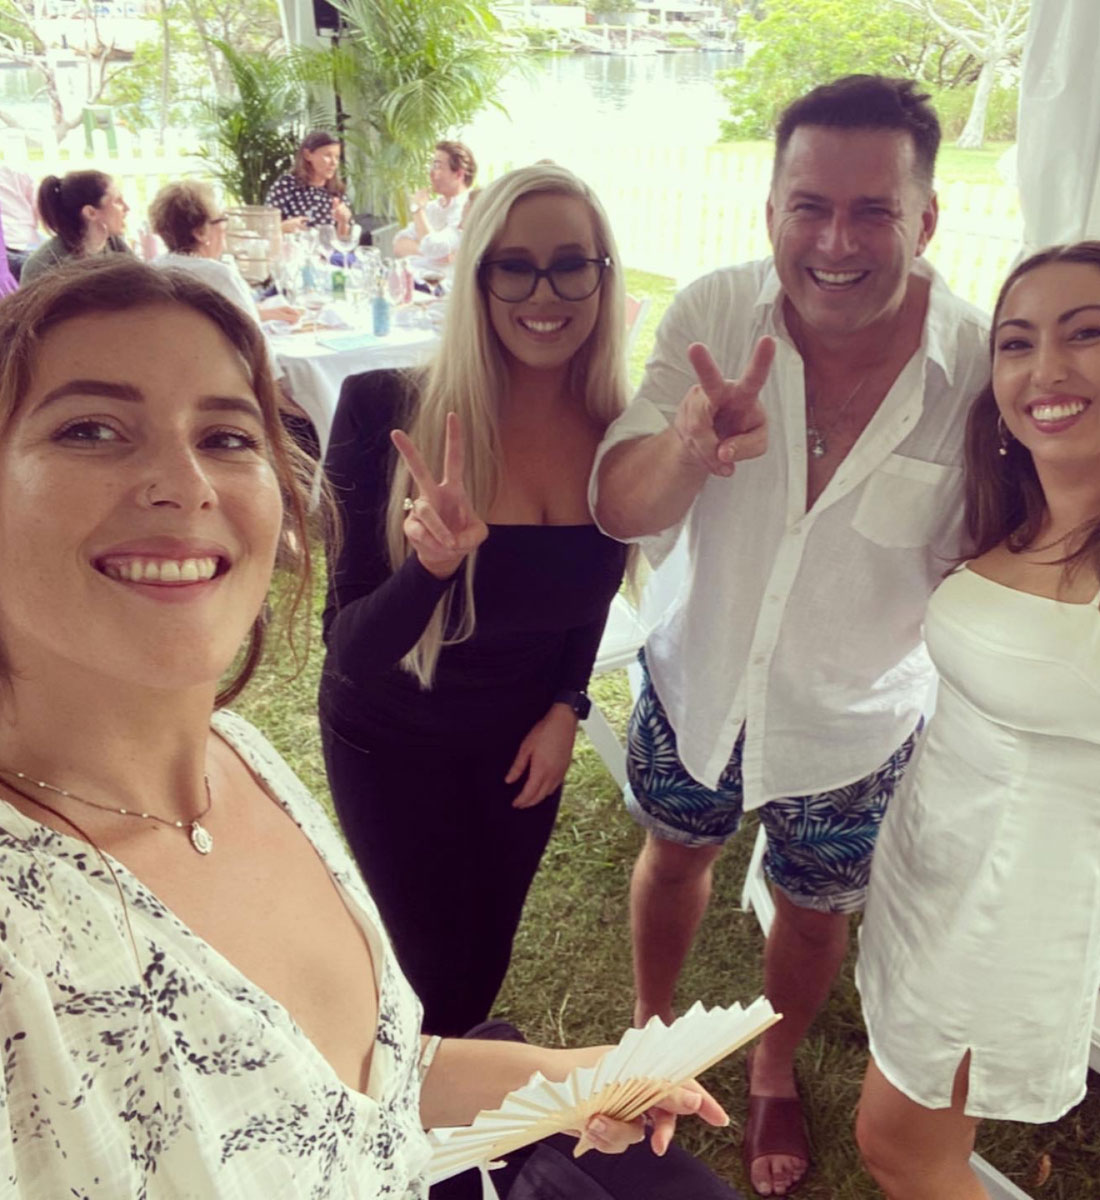 The Yellowpanda team with Karl Stefanovic at the young care long lunch at Noosa